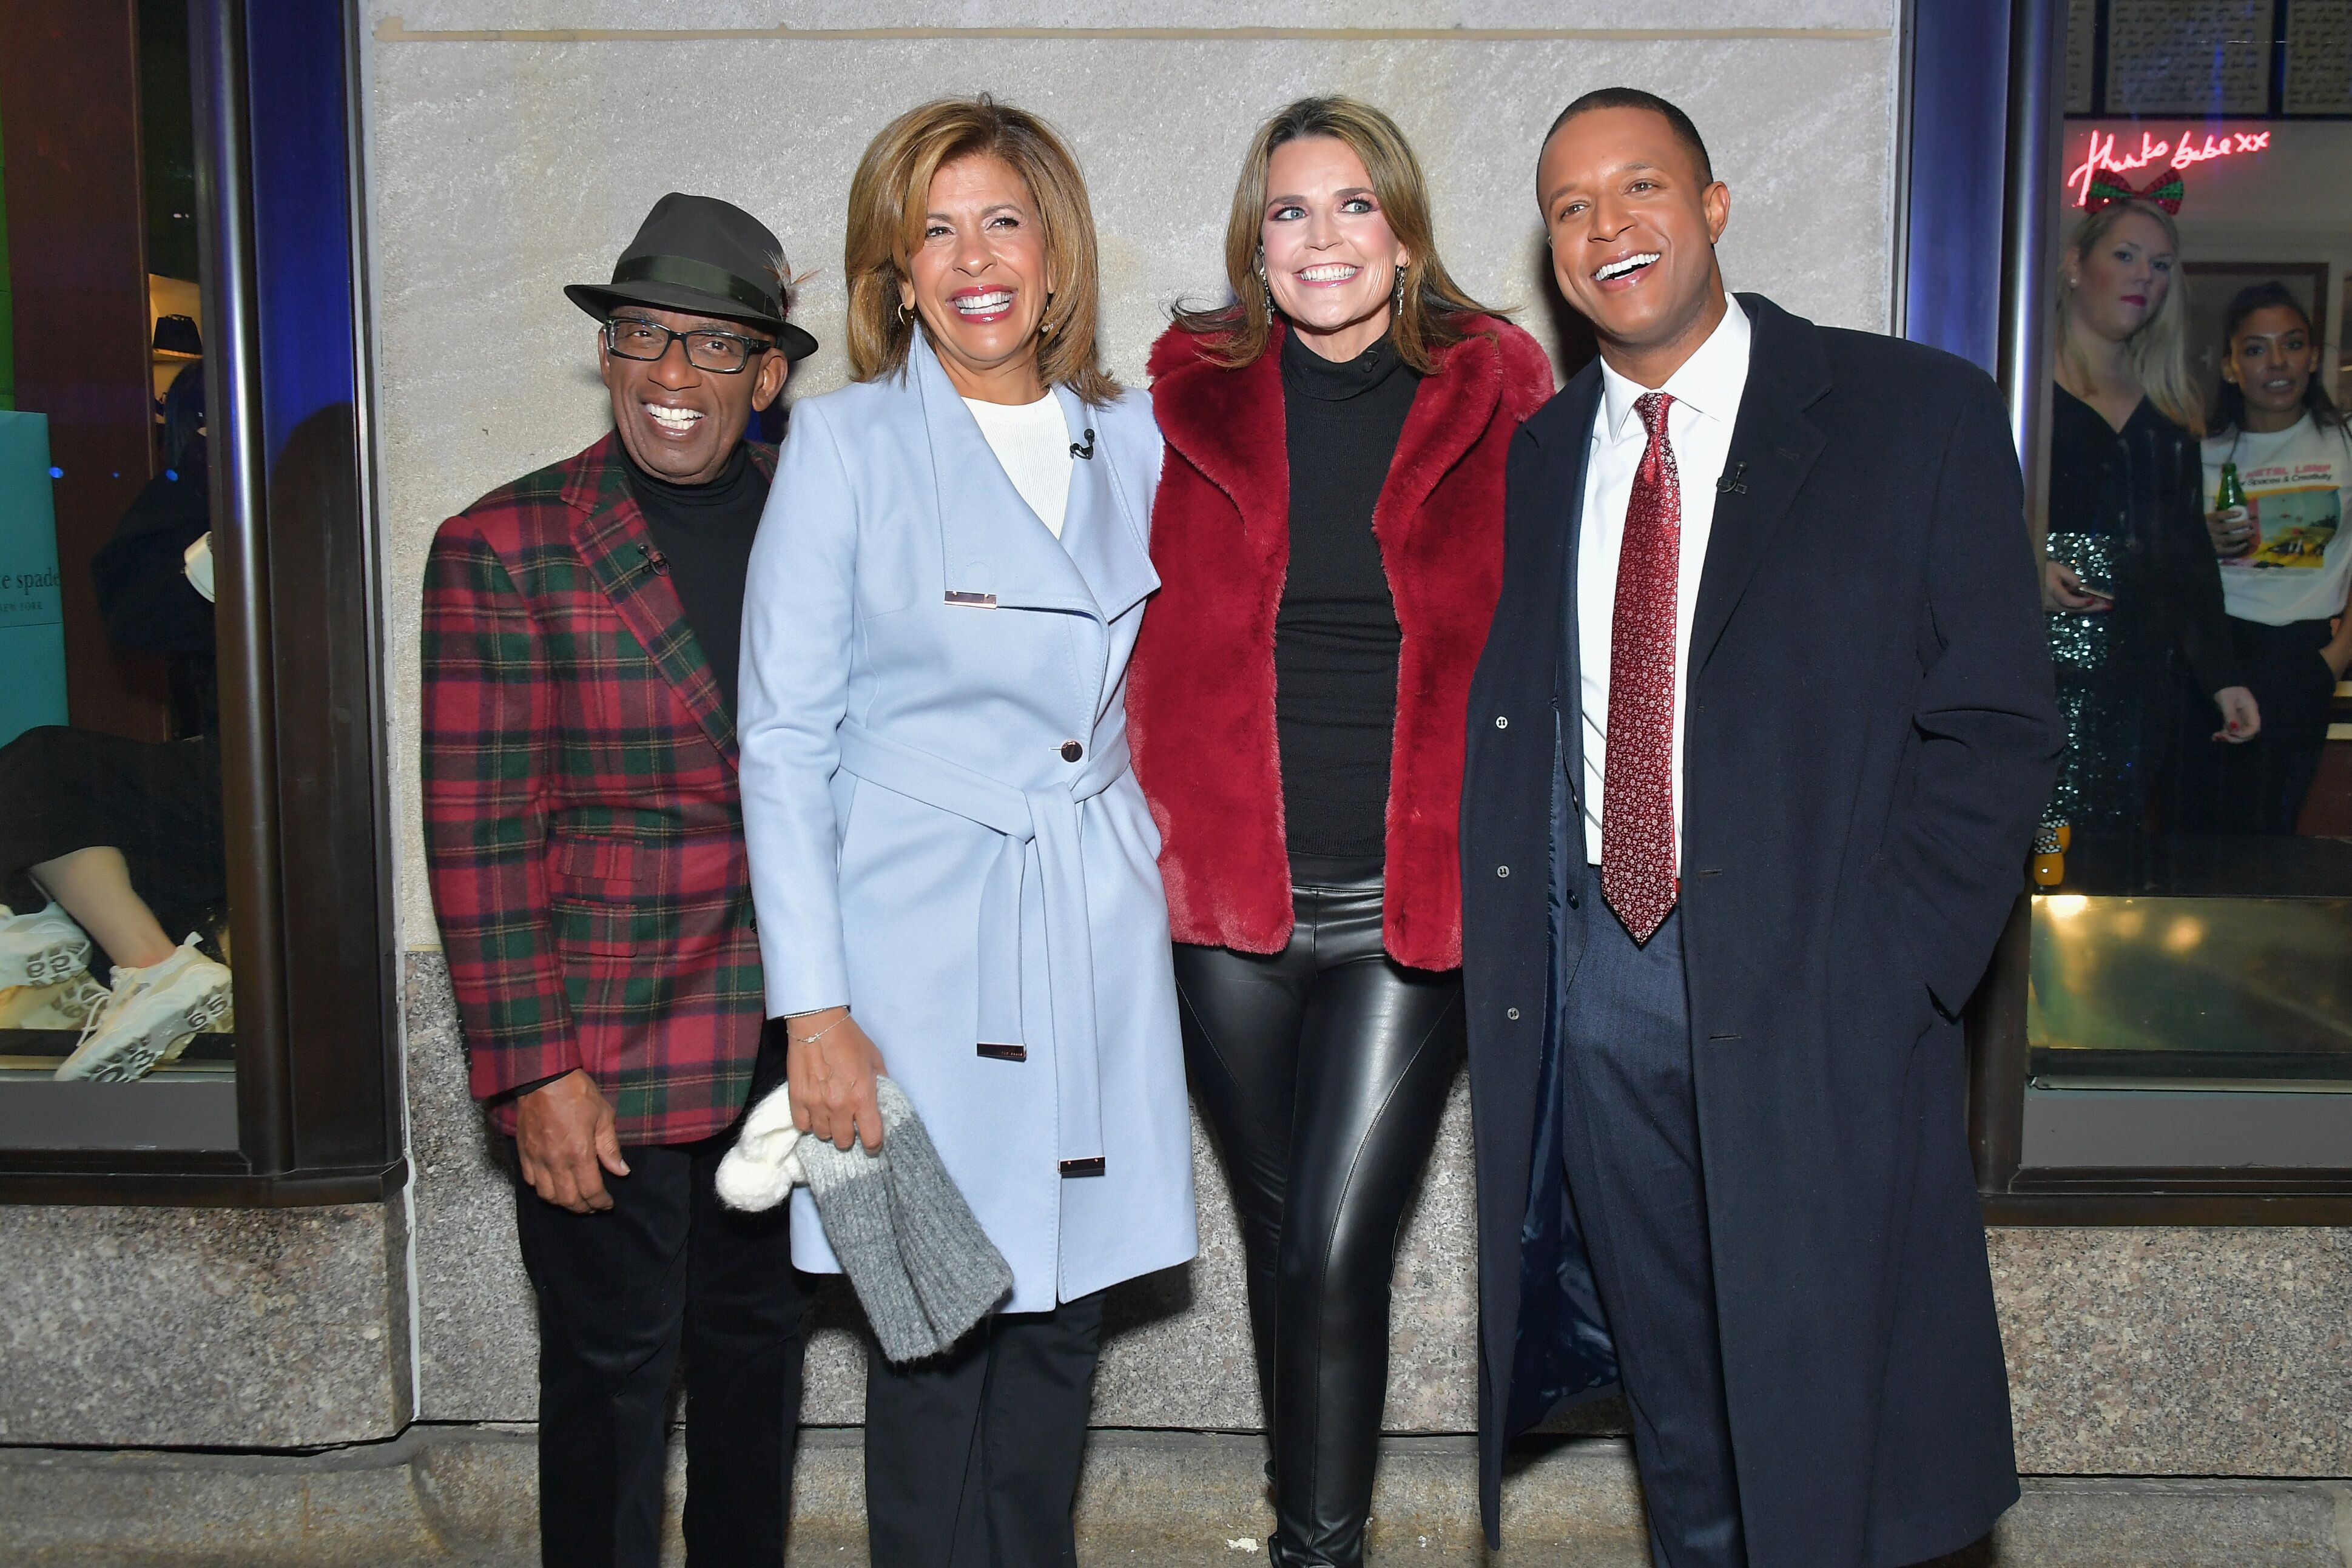 Al Roker, Hoda Kotb, Savannah Guthrie, and Craig Melvin host the 86th Annual Rockefeller Center Christmas Tree Lighting Ceremony on November 28, 2018, in New York City | Photo: Michael Loccisano/Getty Images